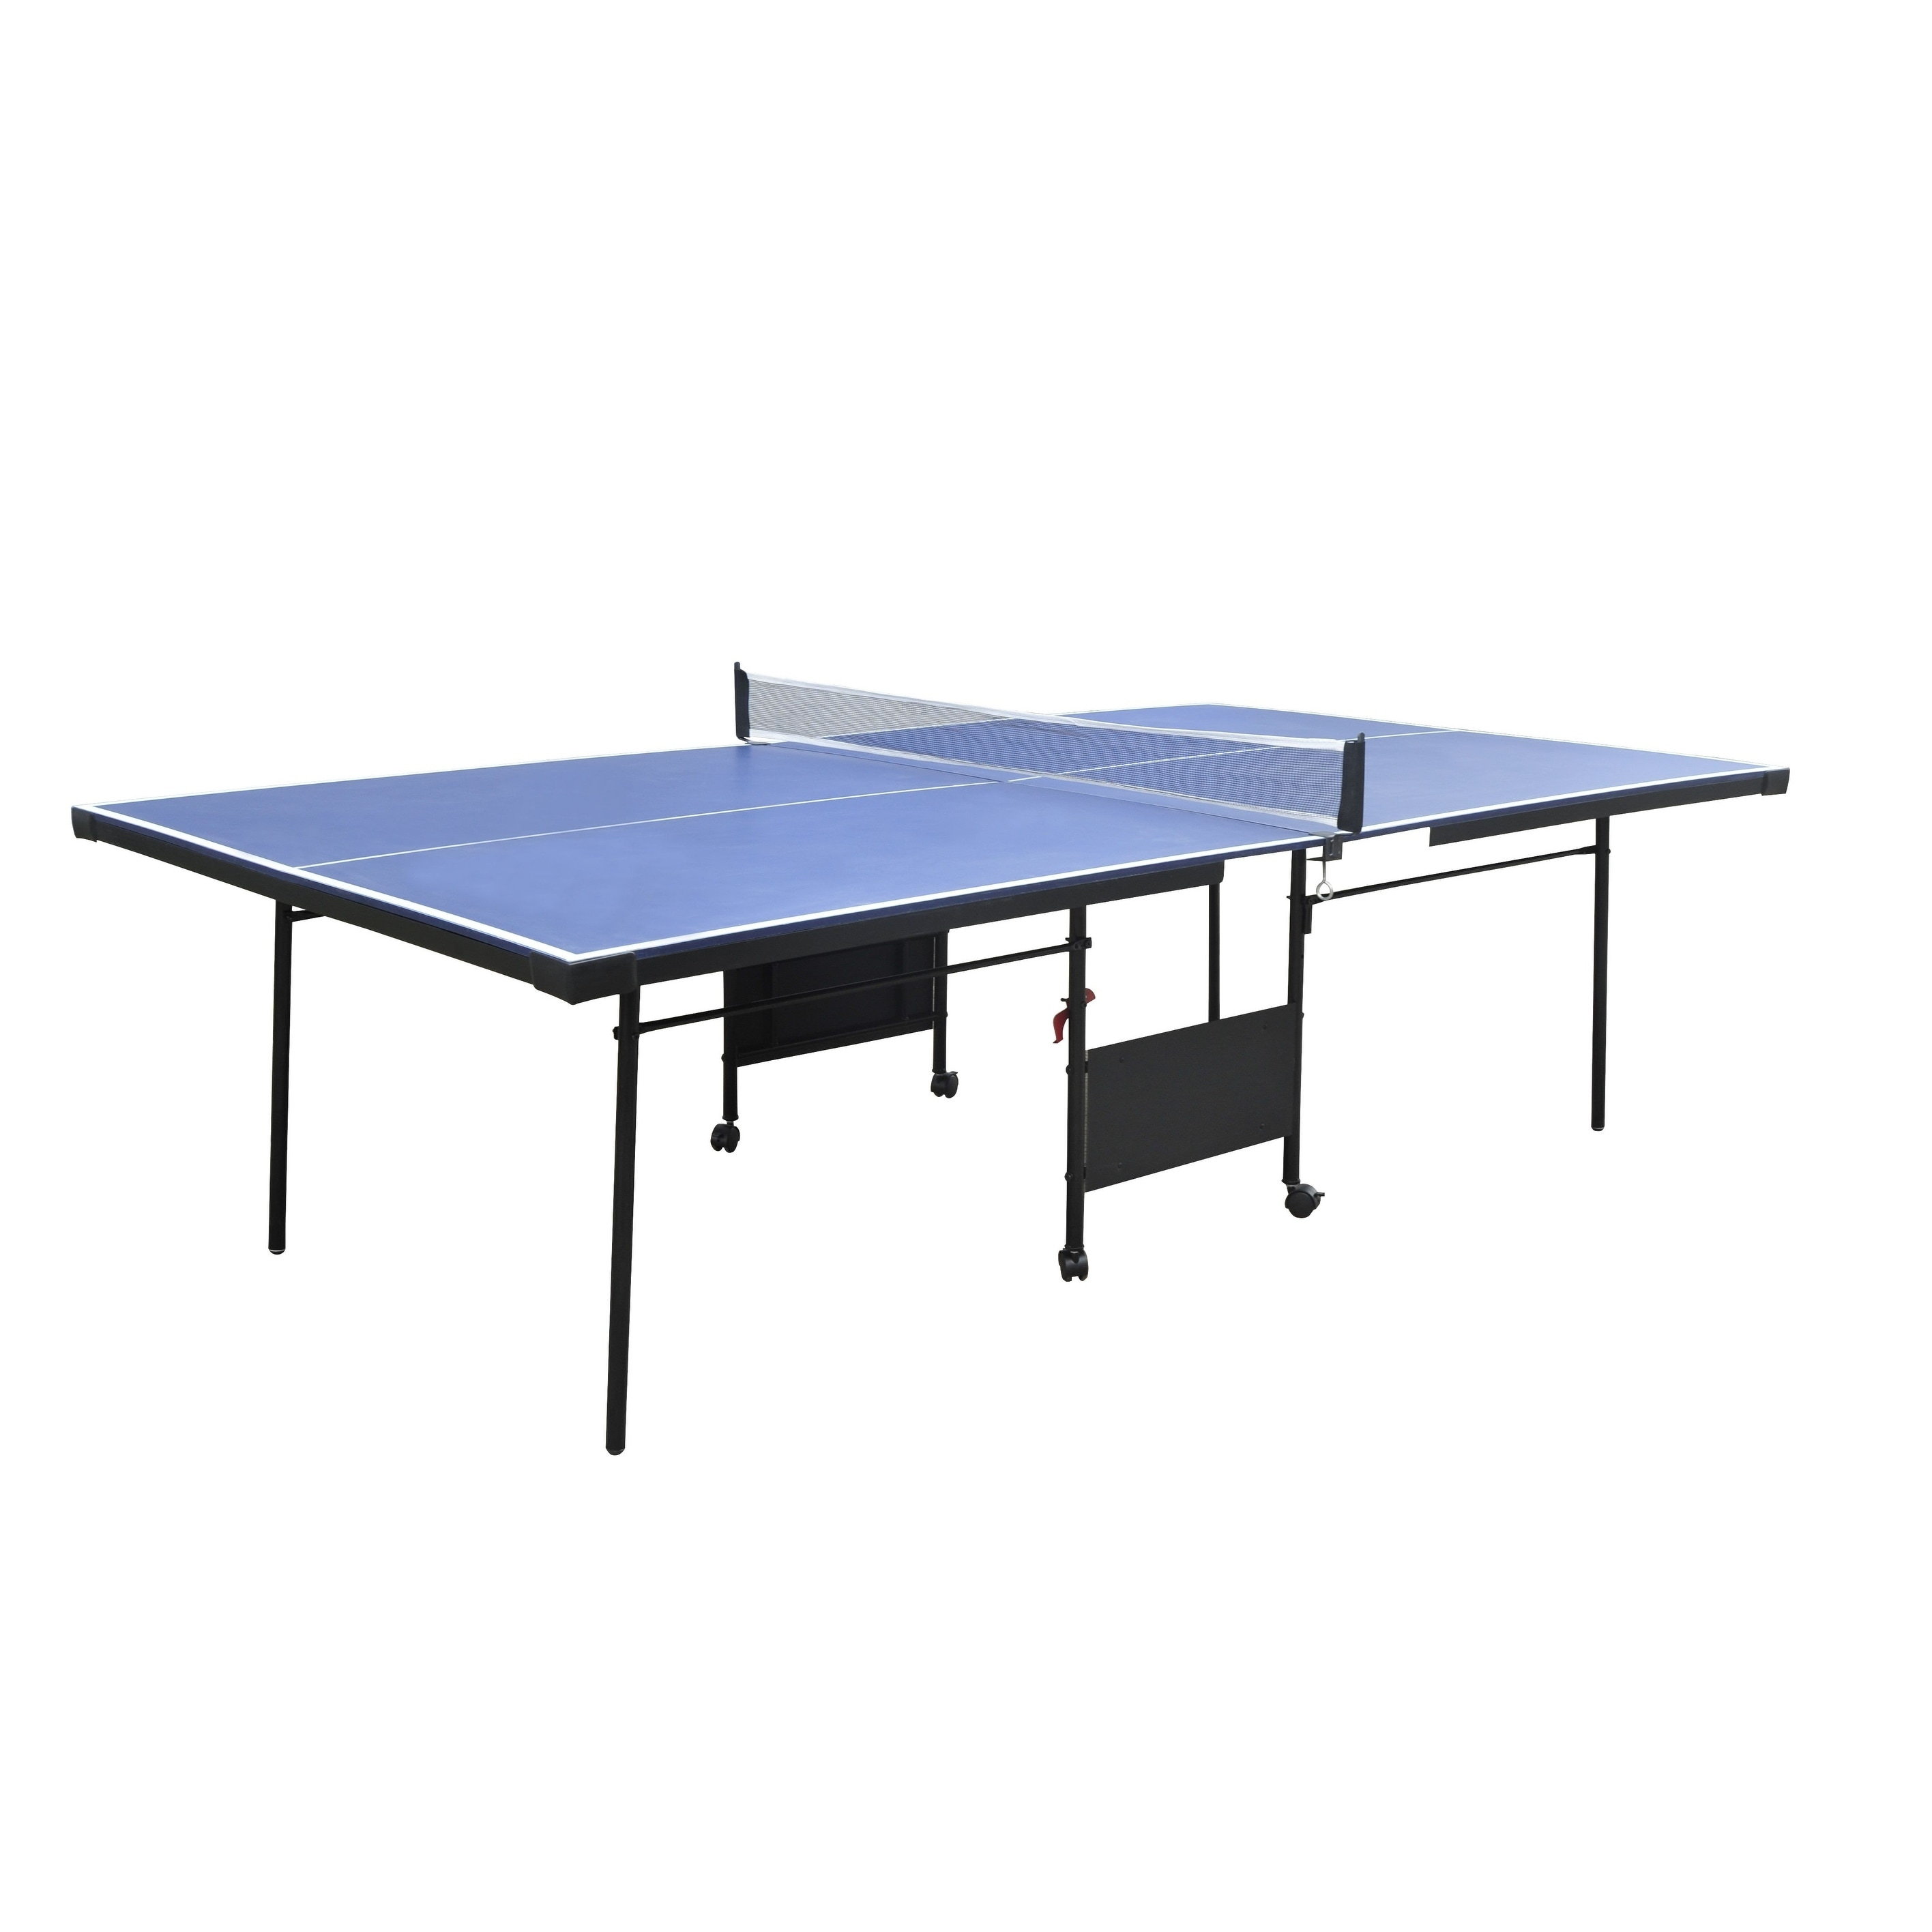 Superieur AirZone Play 9u0027 Official Size Table Tennis Table